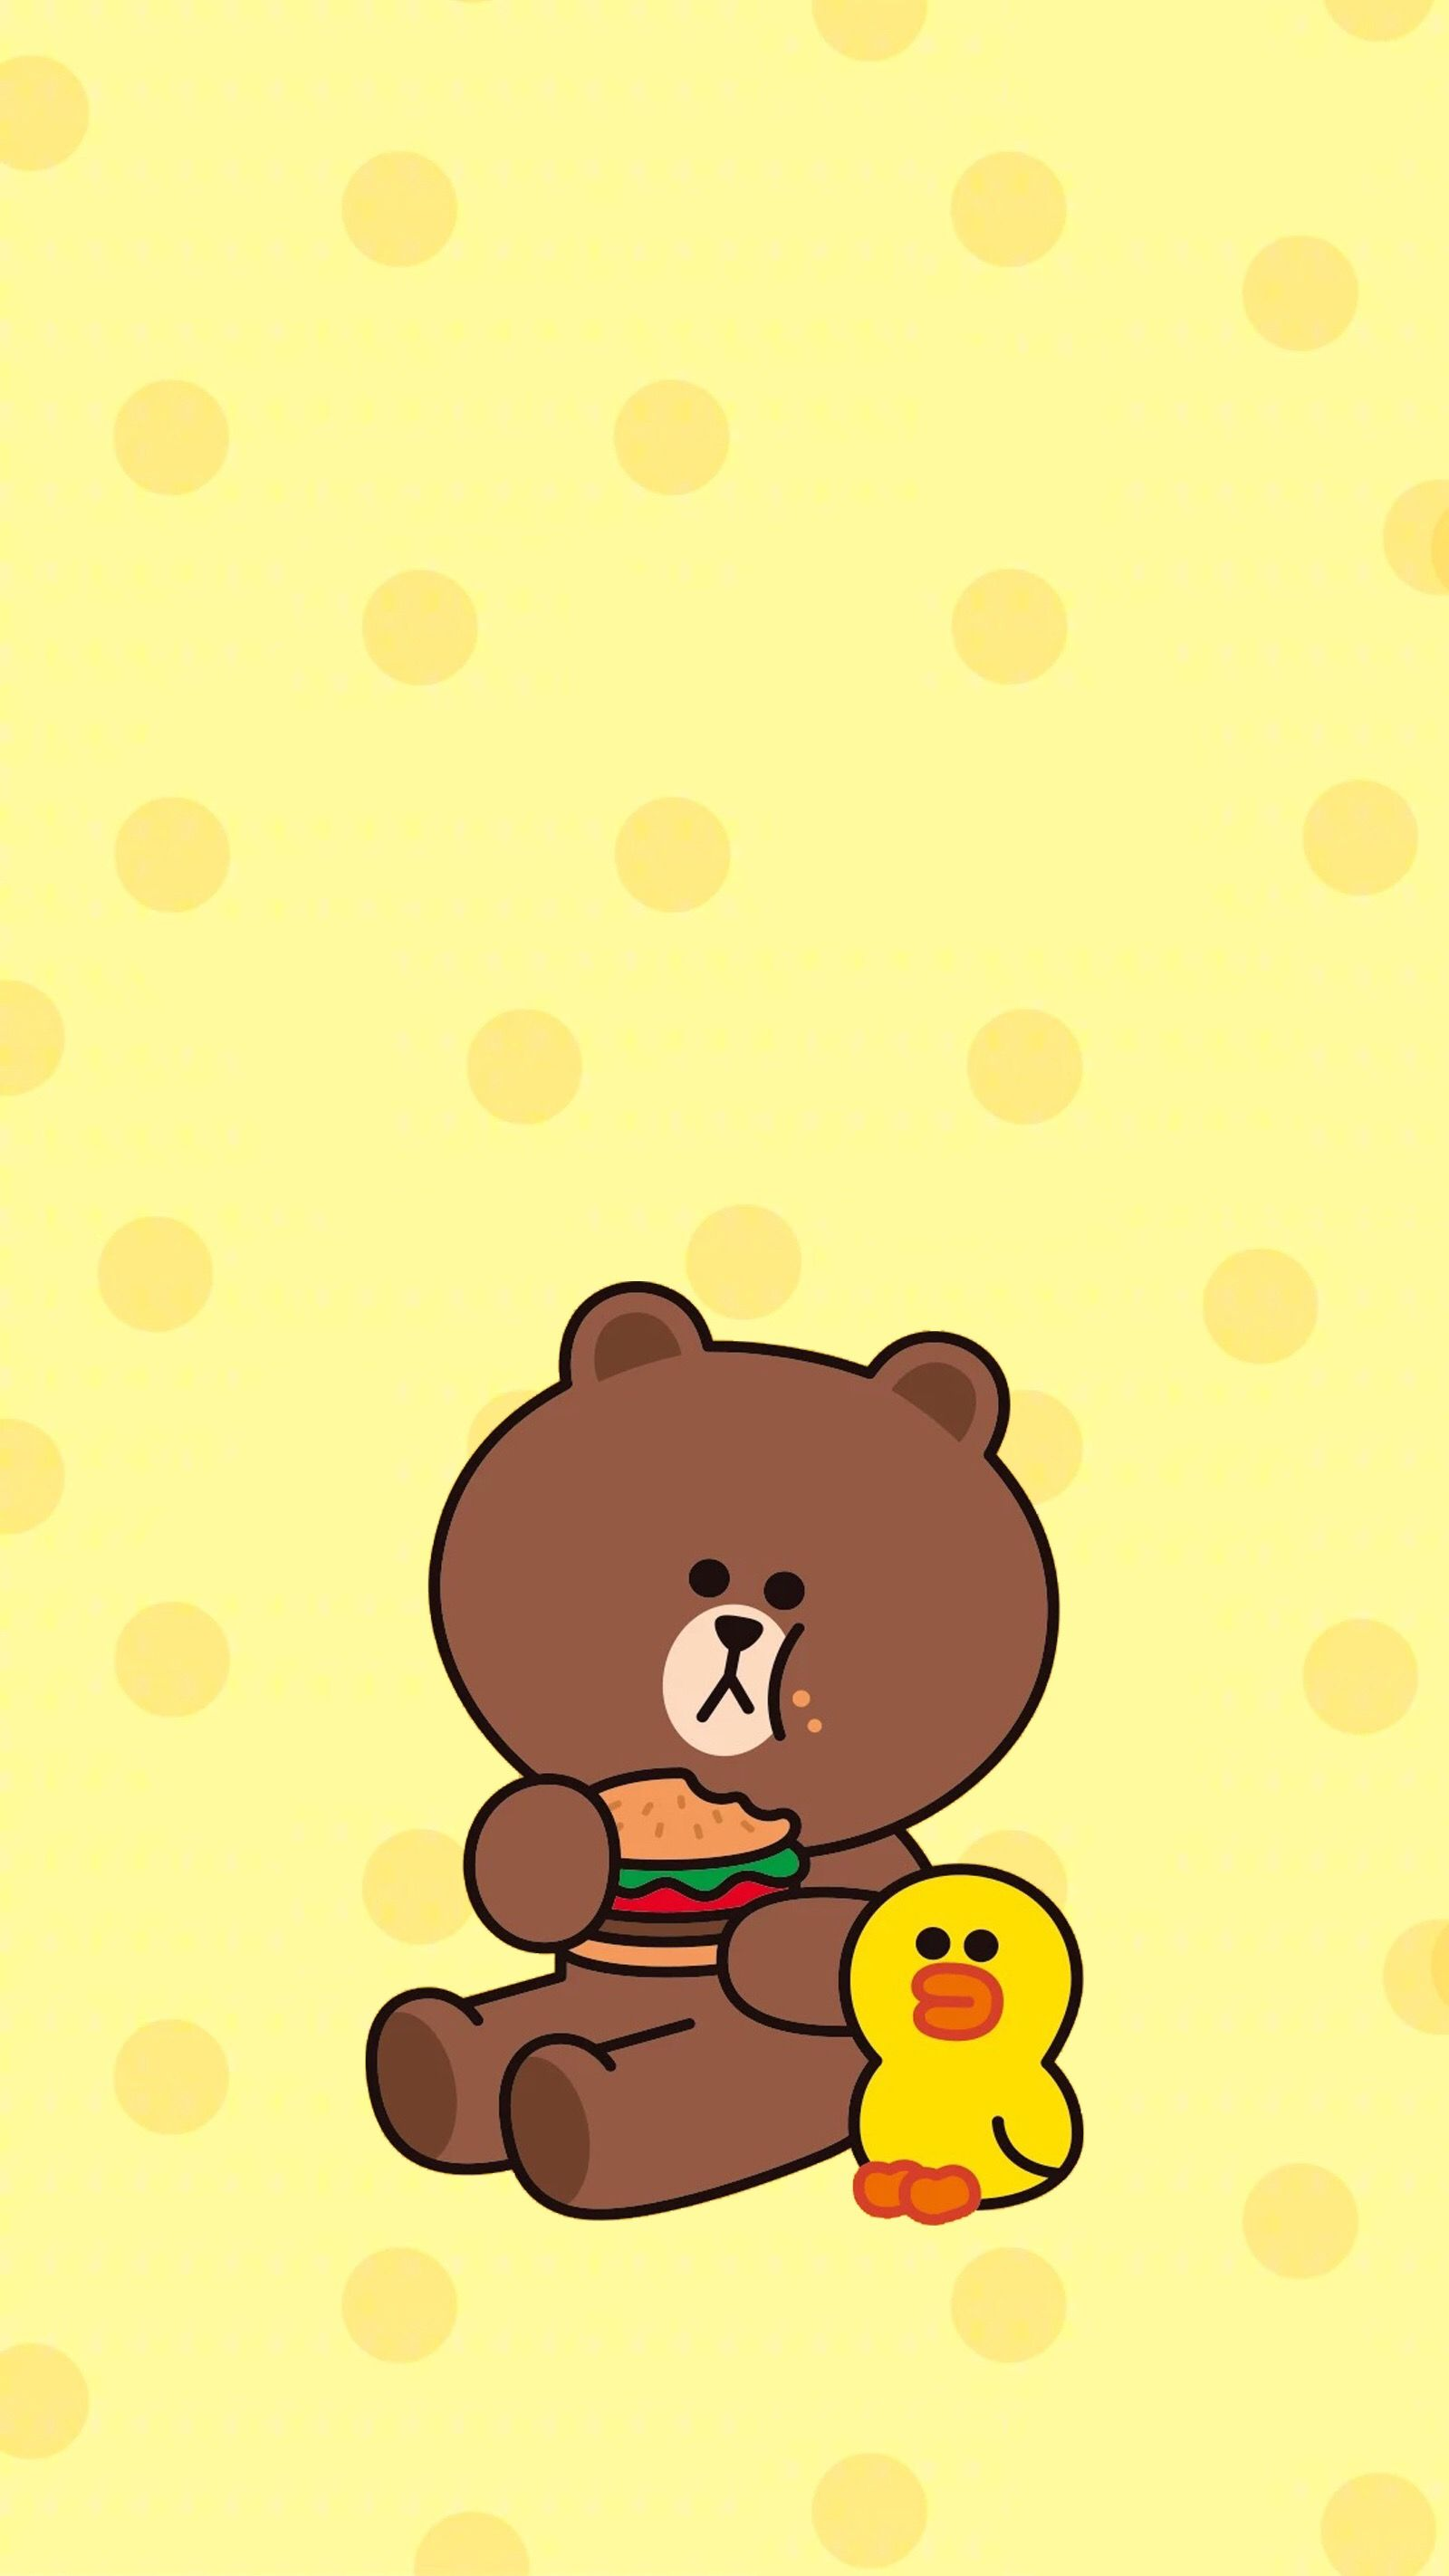 Pin By Bumbum Tumtum On Brown And Cony In 2019 Friends